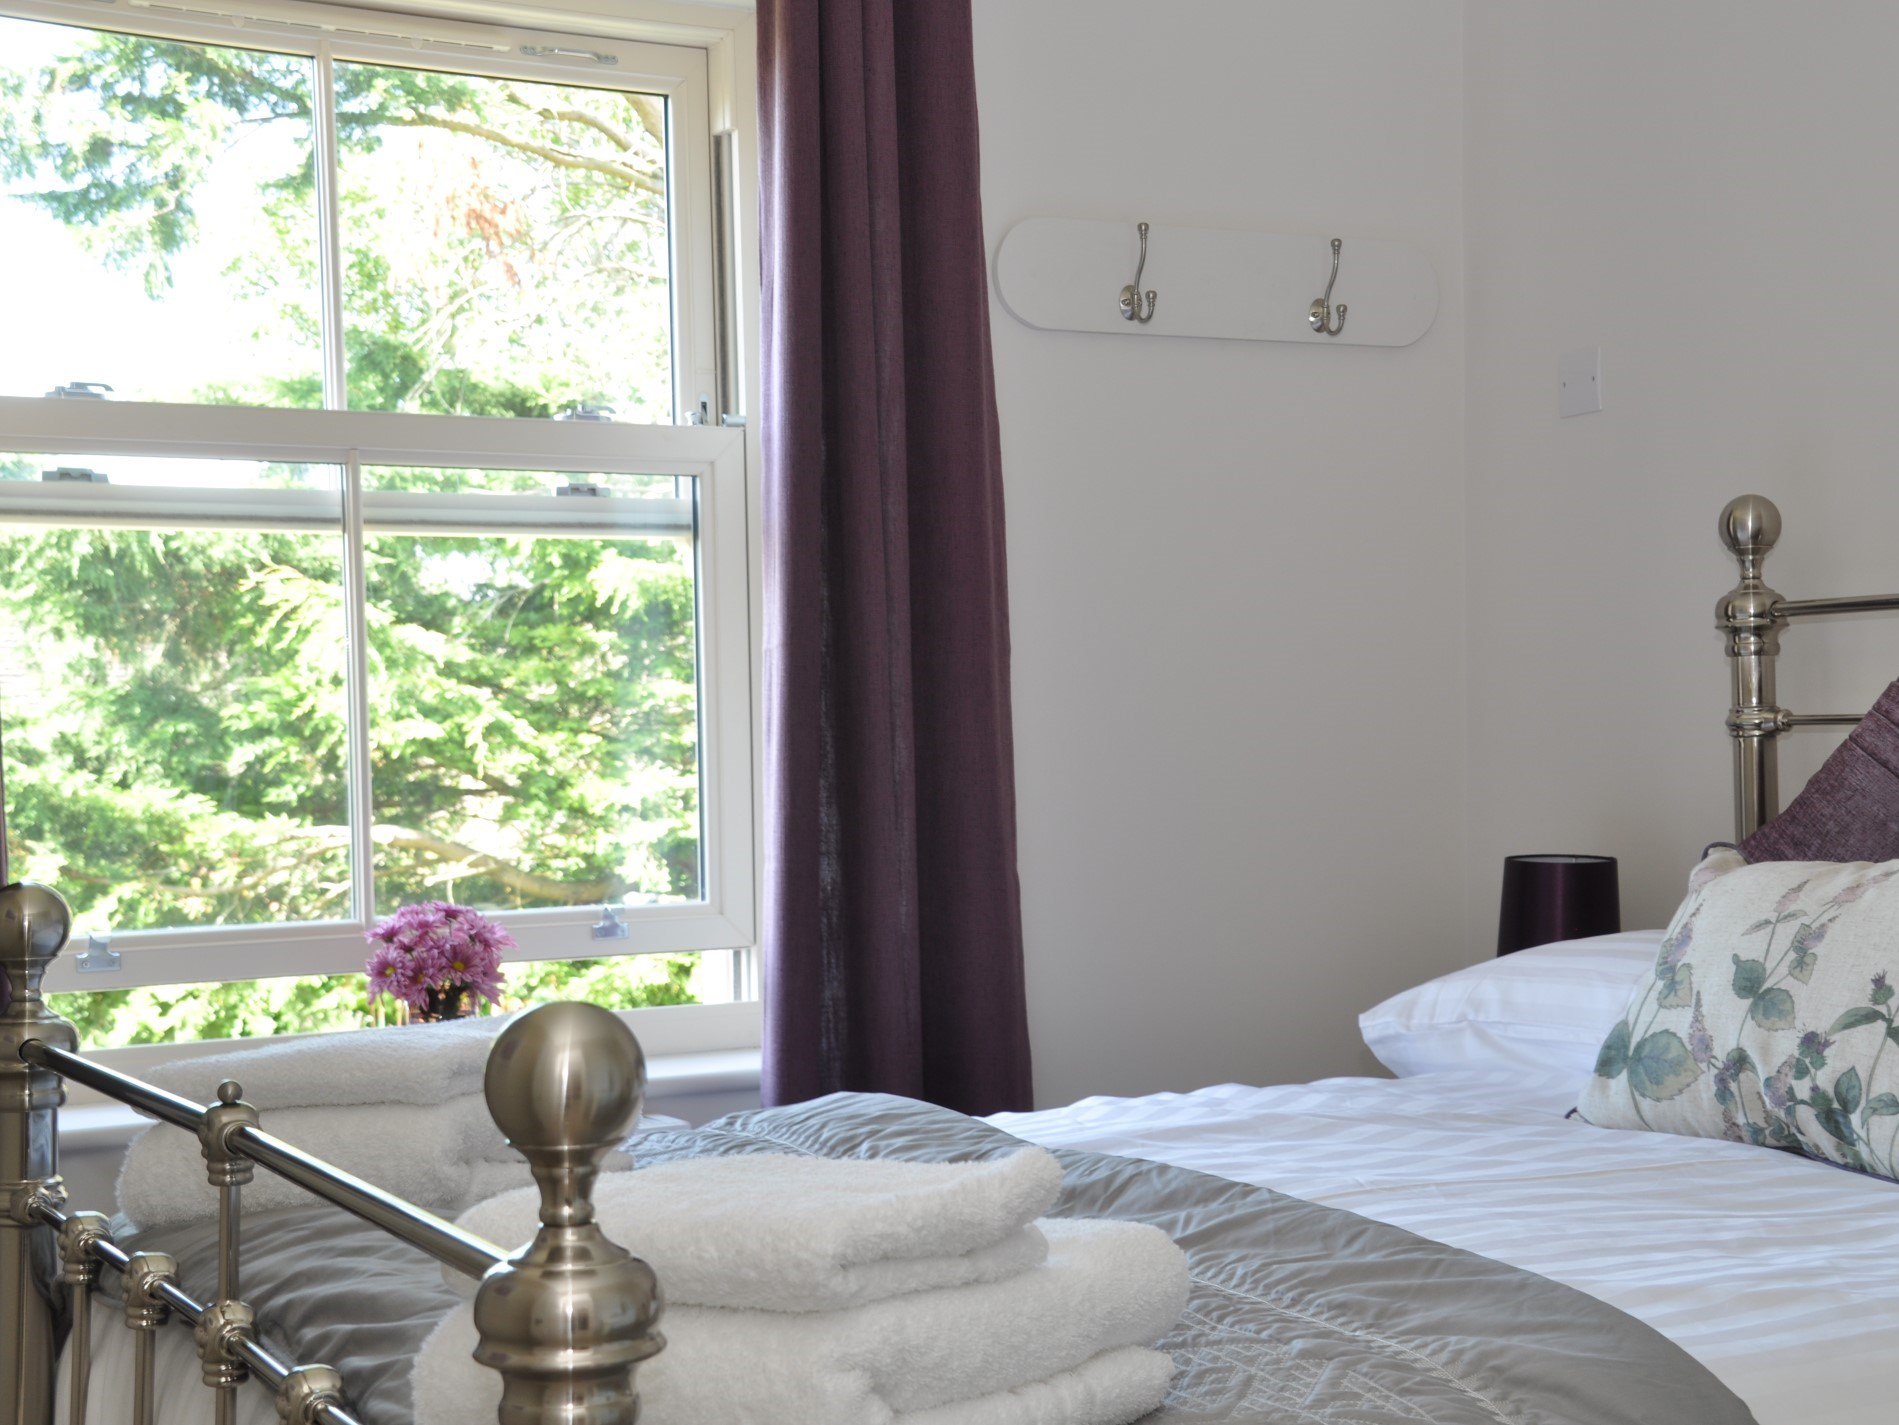 A first floor double room with a garden view